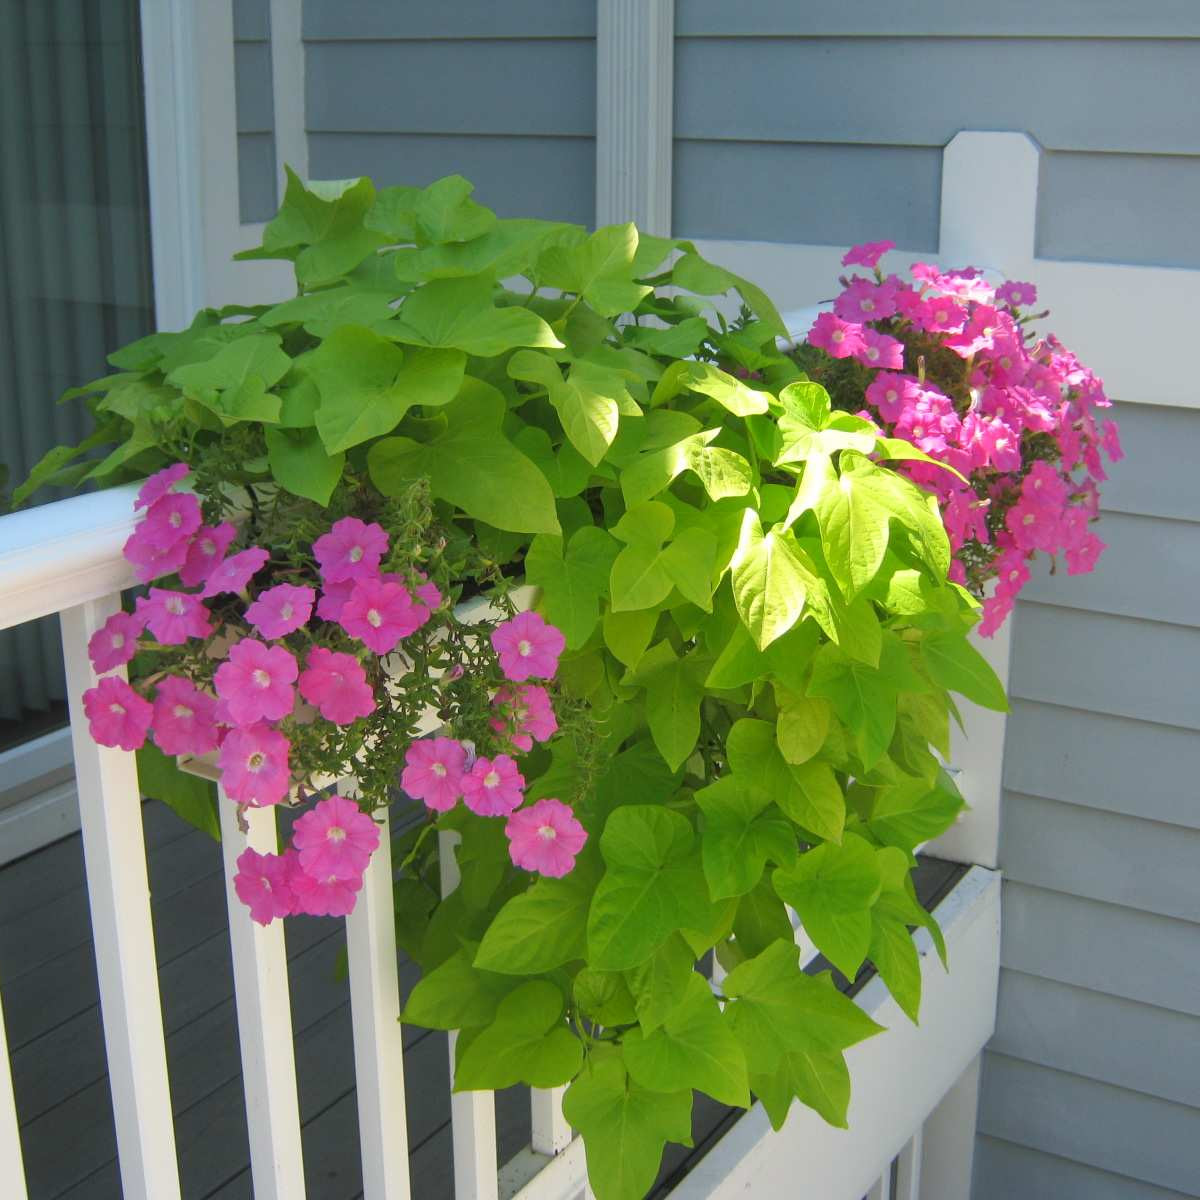 Wave Petunias And Sweet Potato Vines In A Deck Planter